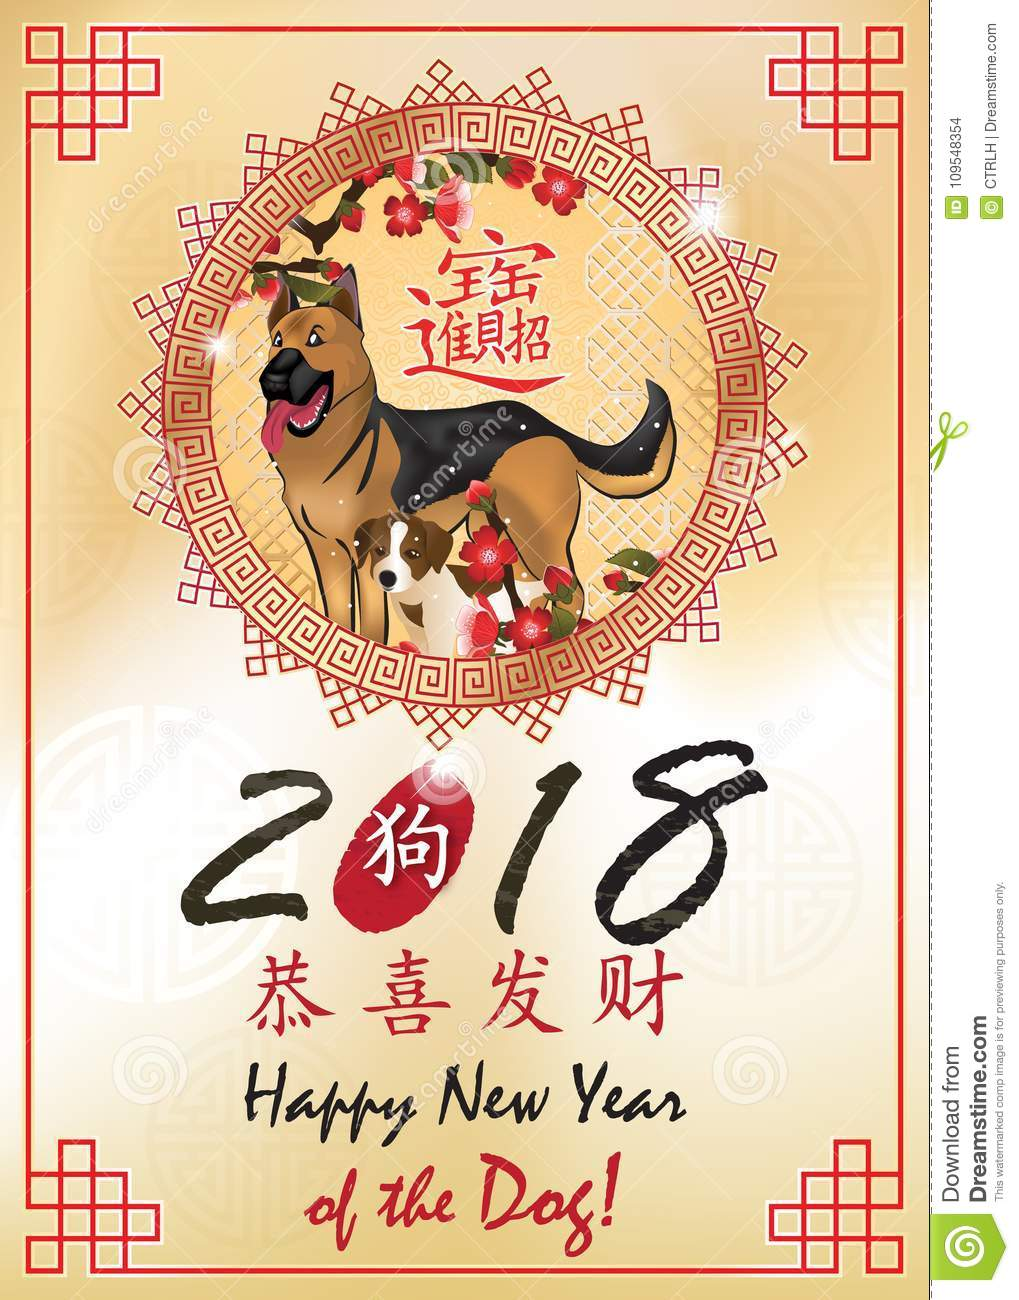 Chinese new year of the dog 2018 printable greeting card stock download chinese new year of the dog 2018 printable greeting card stock illustration illustration of m4hsunfo